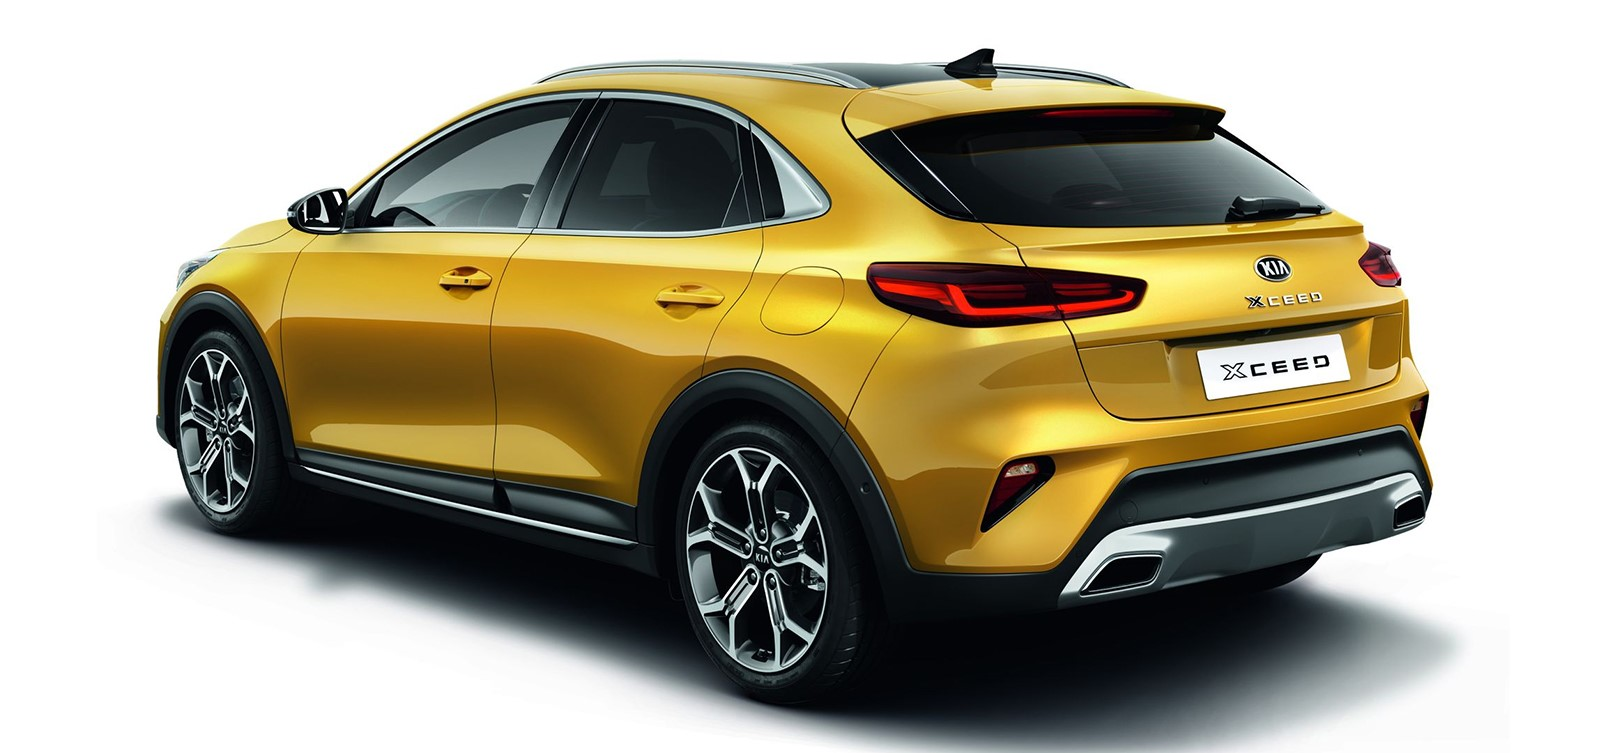 Kia XCeed and 'Imagine by Kia' concept acclaimed in latest..